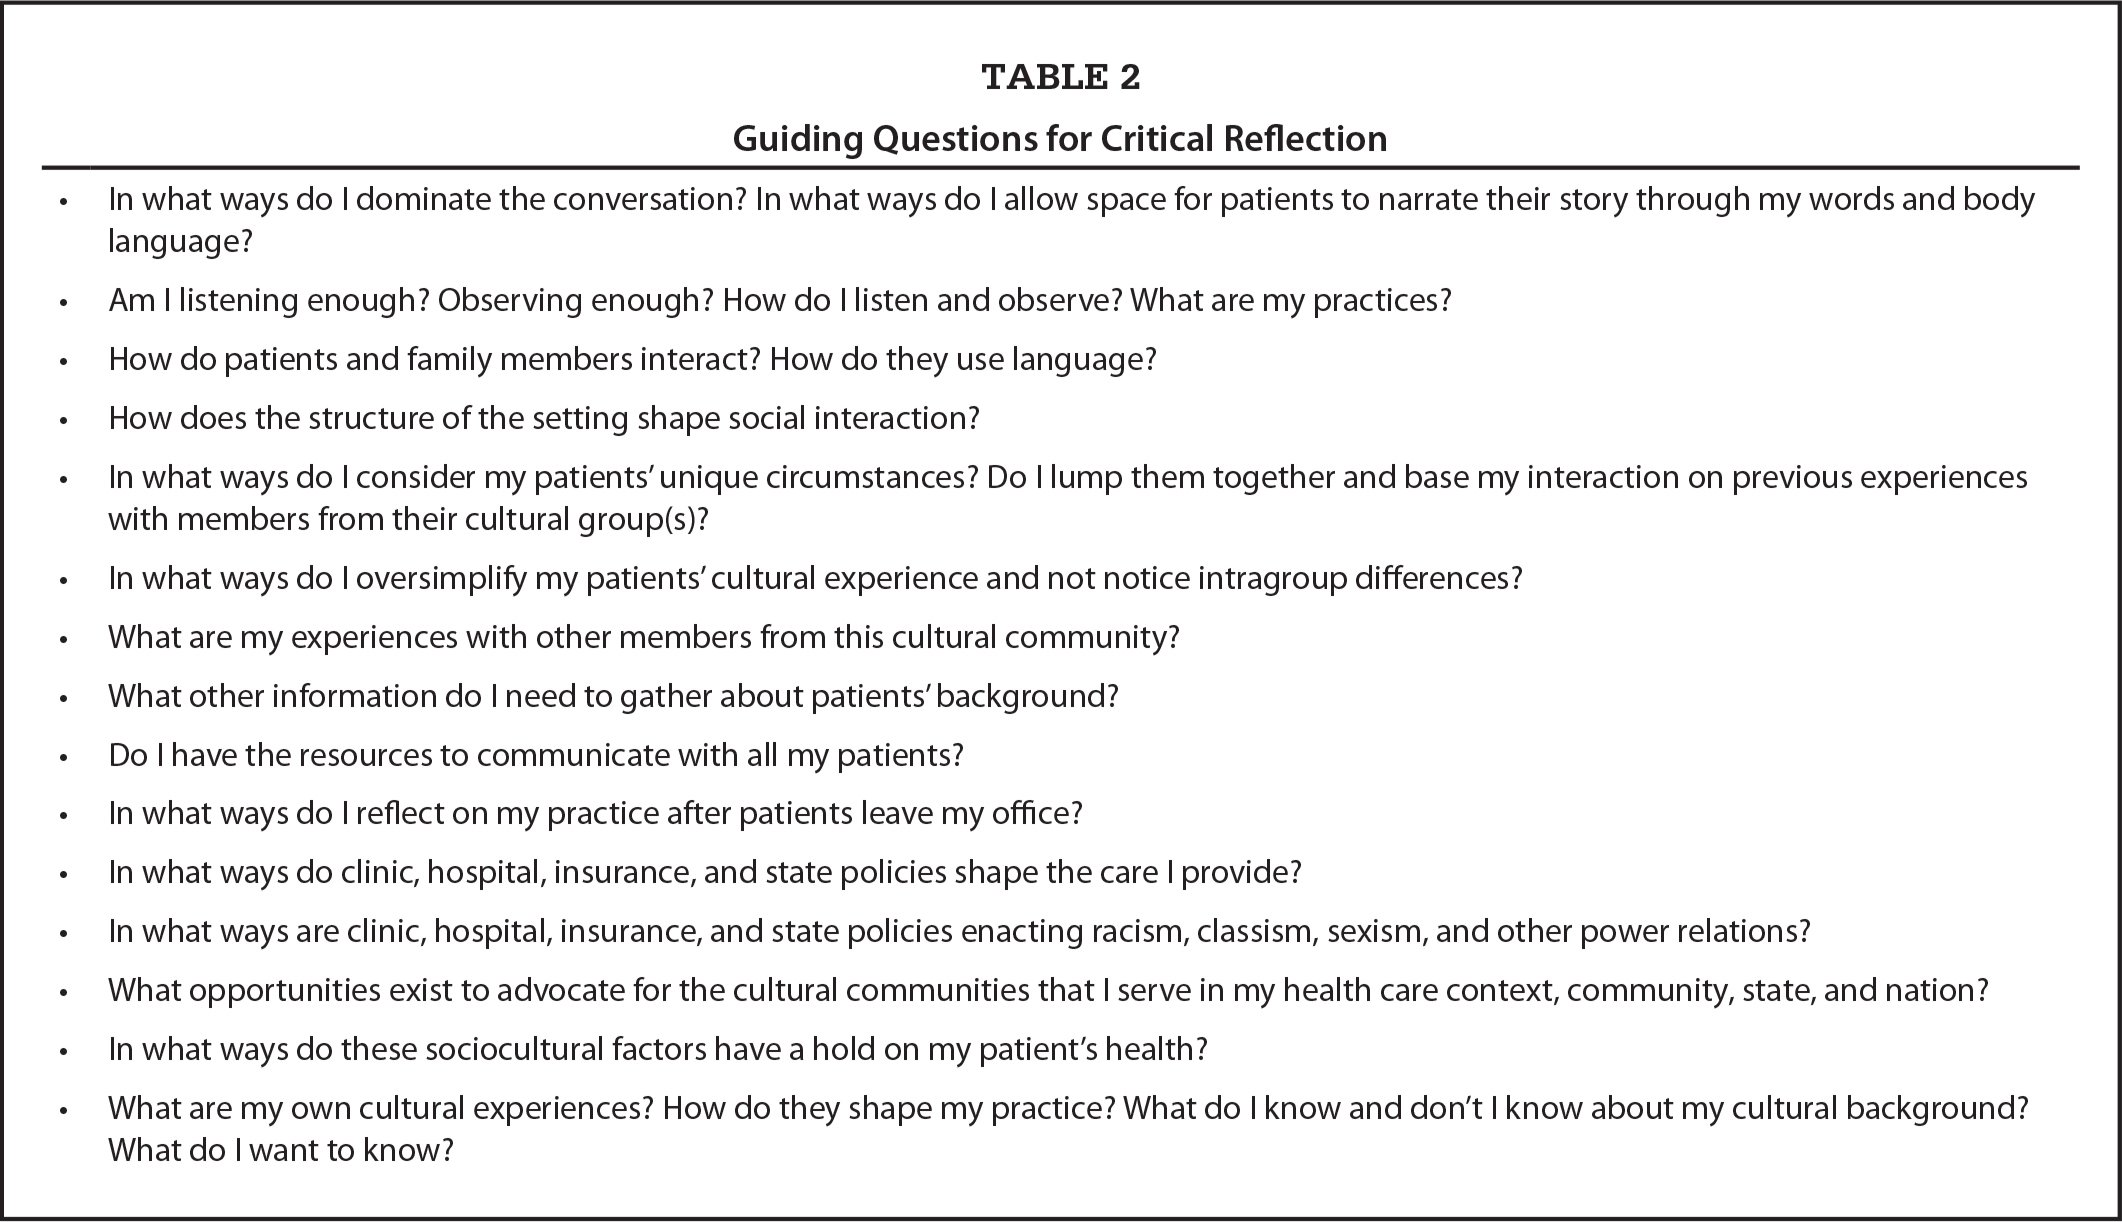 Guiding Questions for Critical Reflection